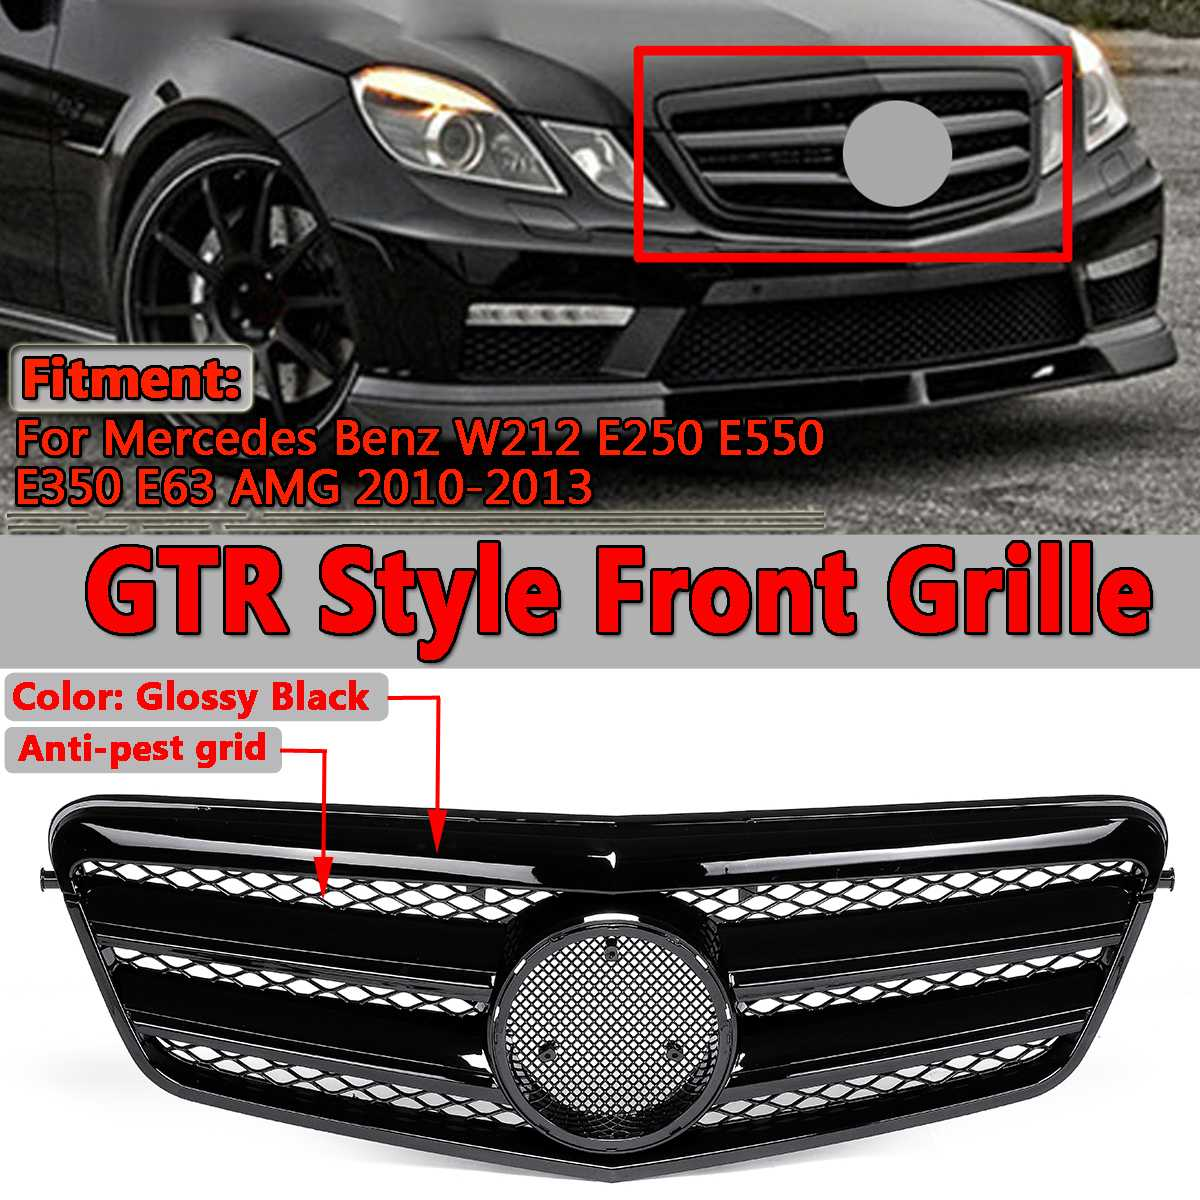 Mercedes Benz E550 Amg: For AMG Style Car Front Grill Grille For Mercedes For Benz